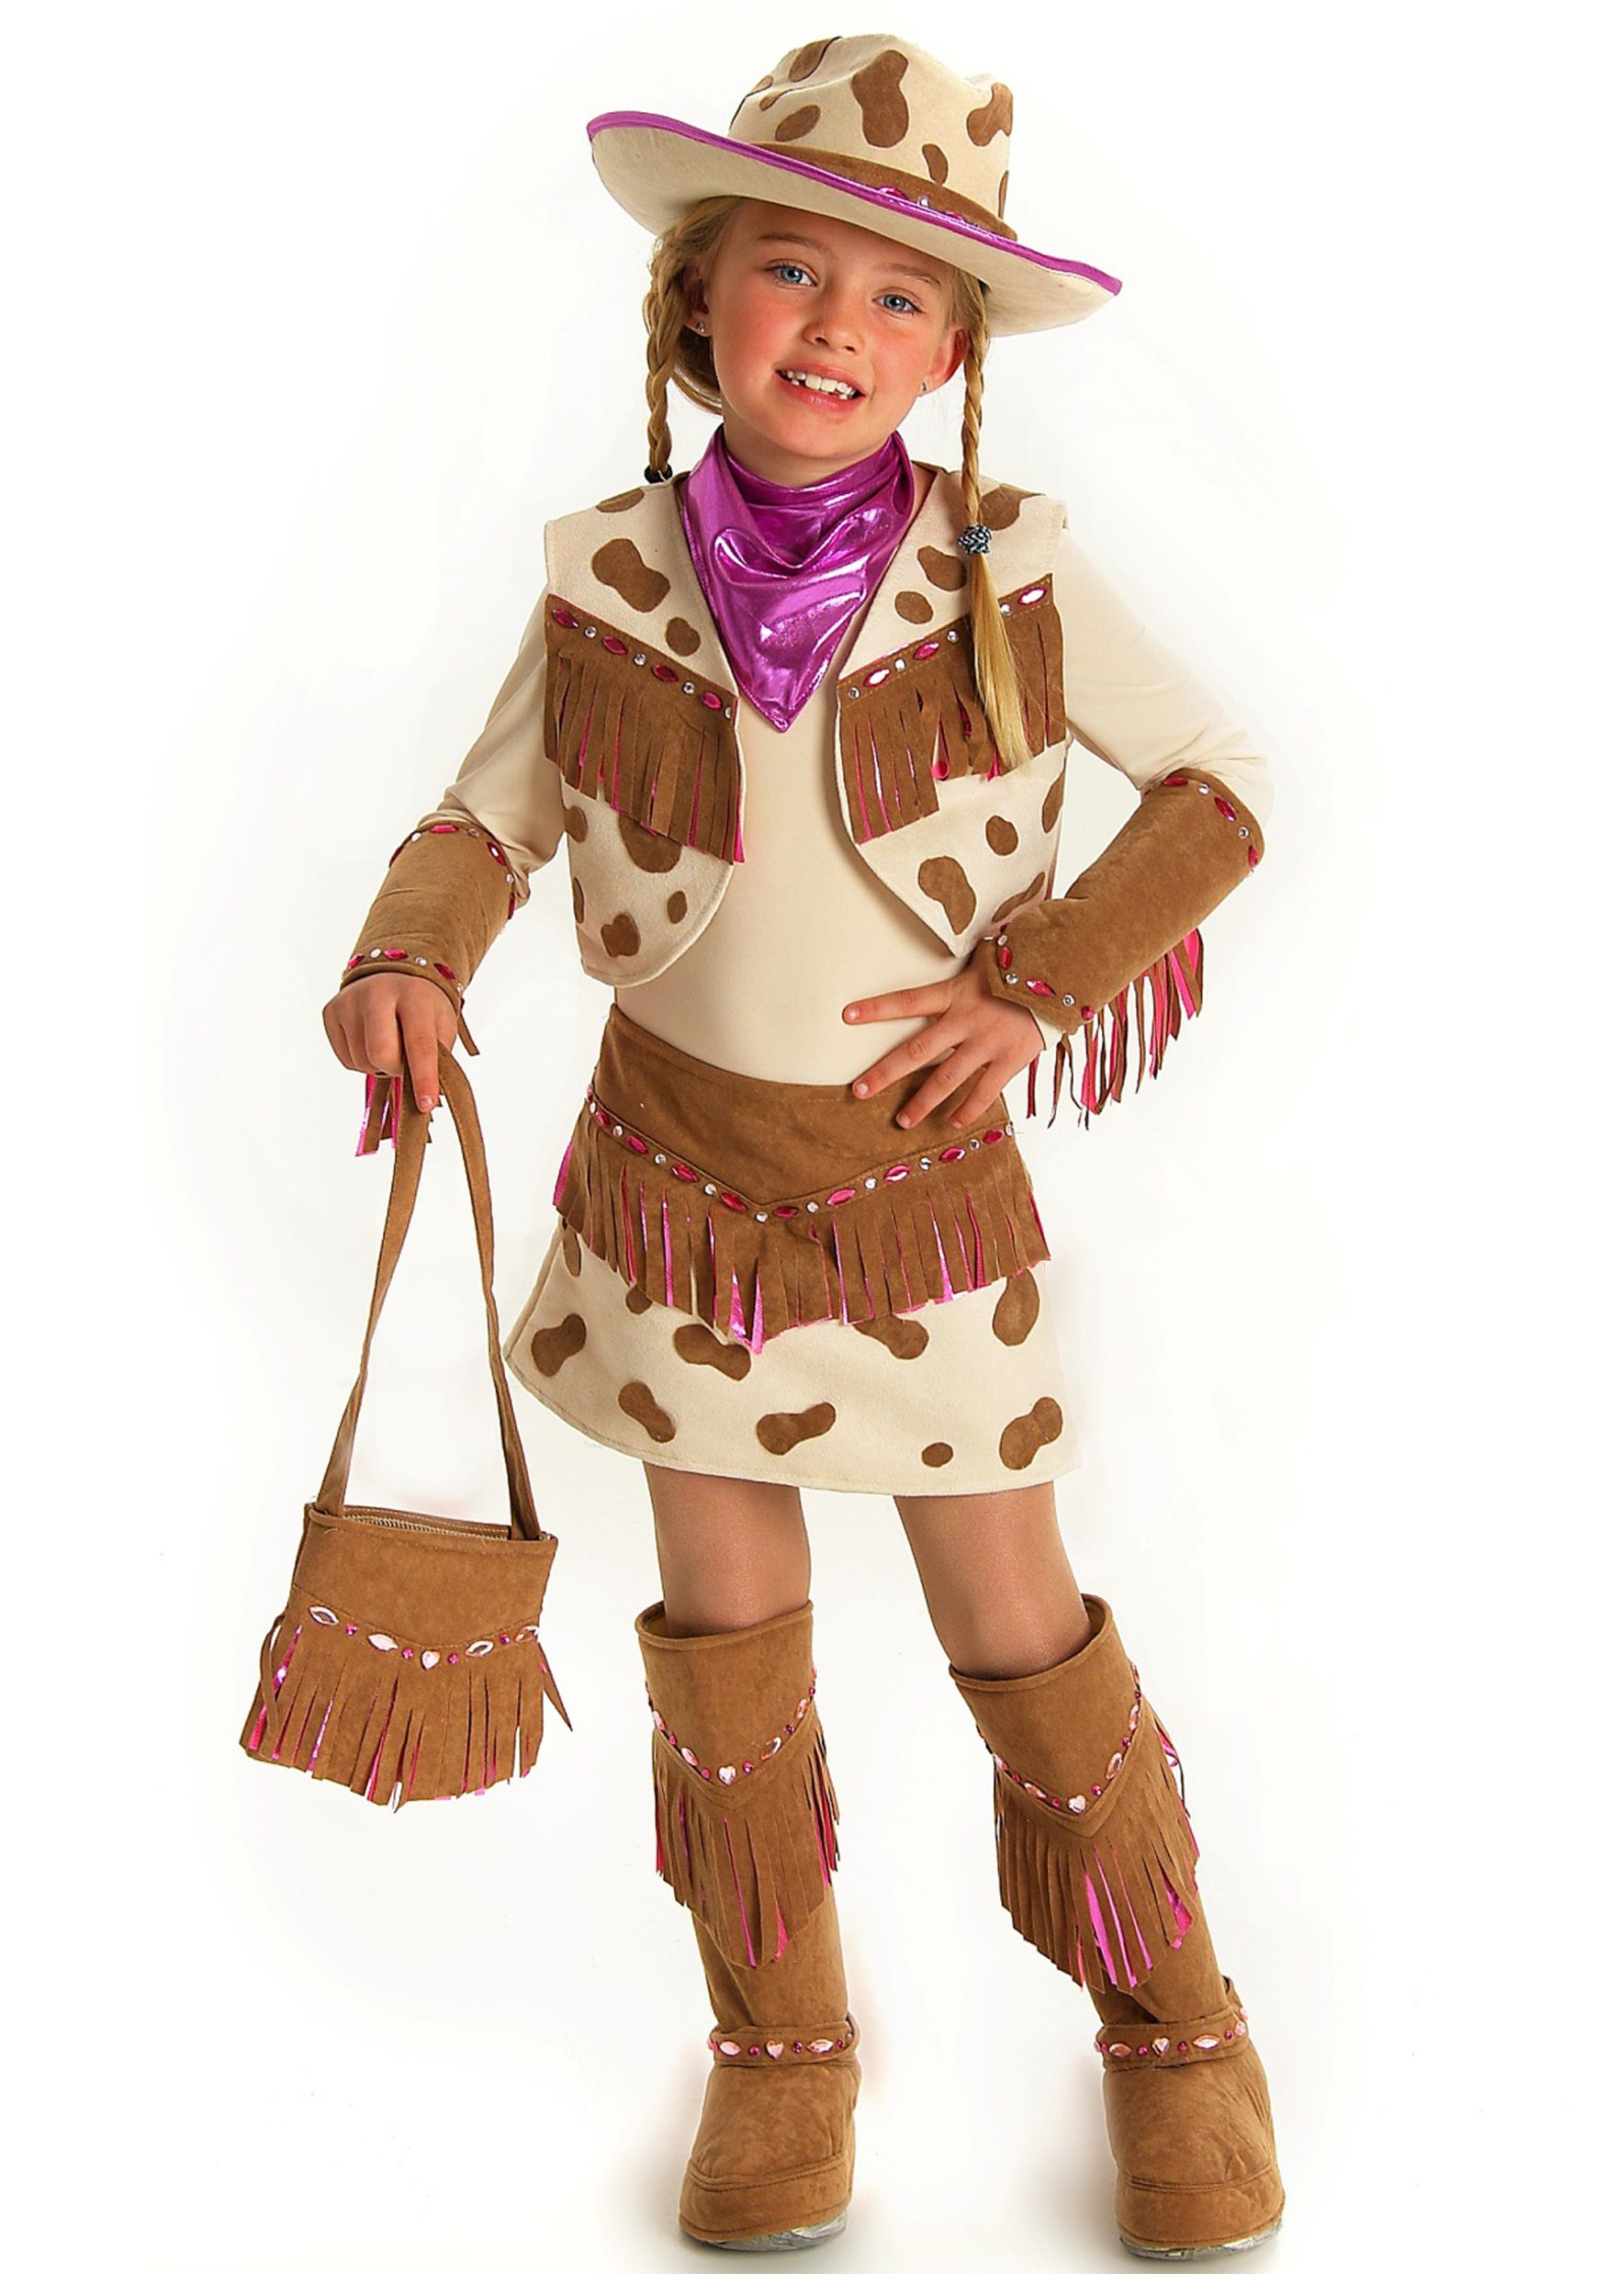 Hahaha Madeline picked this as her halloween costume. Doubtful... Girls Rhinestone Cowgirl Costume | Holidays | Pinterest | Cowgirl costume Costumes and ...  sc 1 st  Pinterest & Hahaha Madeline picked this as her halloween costume. Doubtful ...